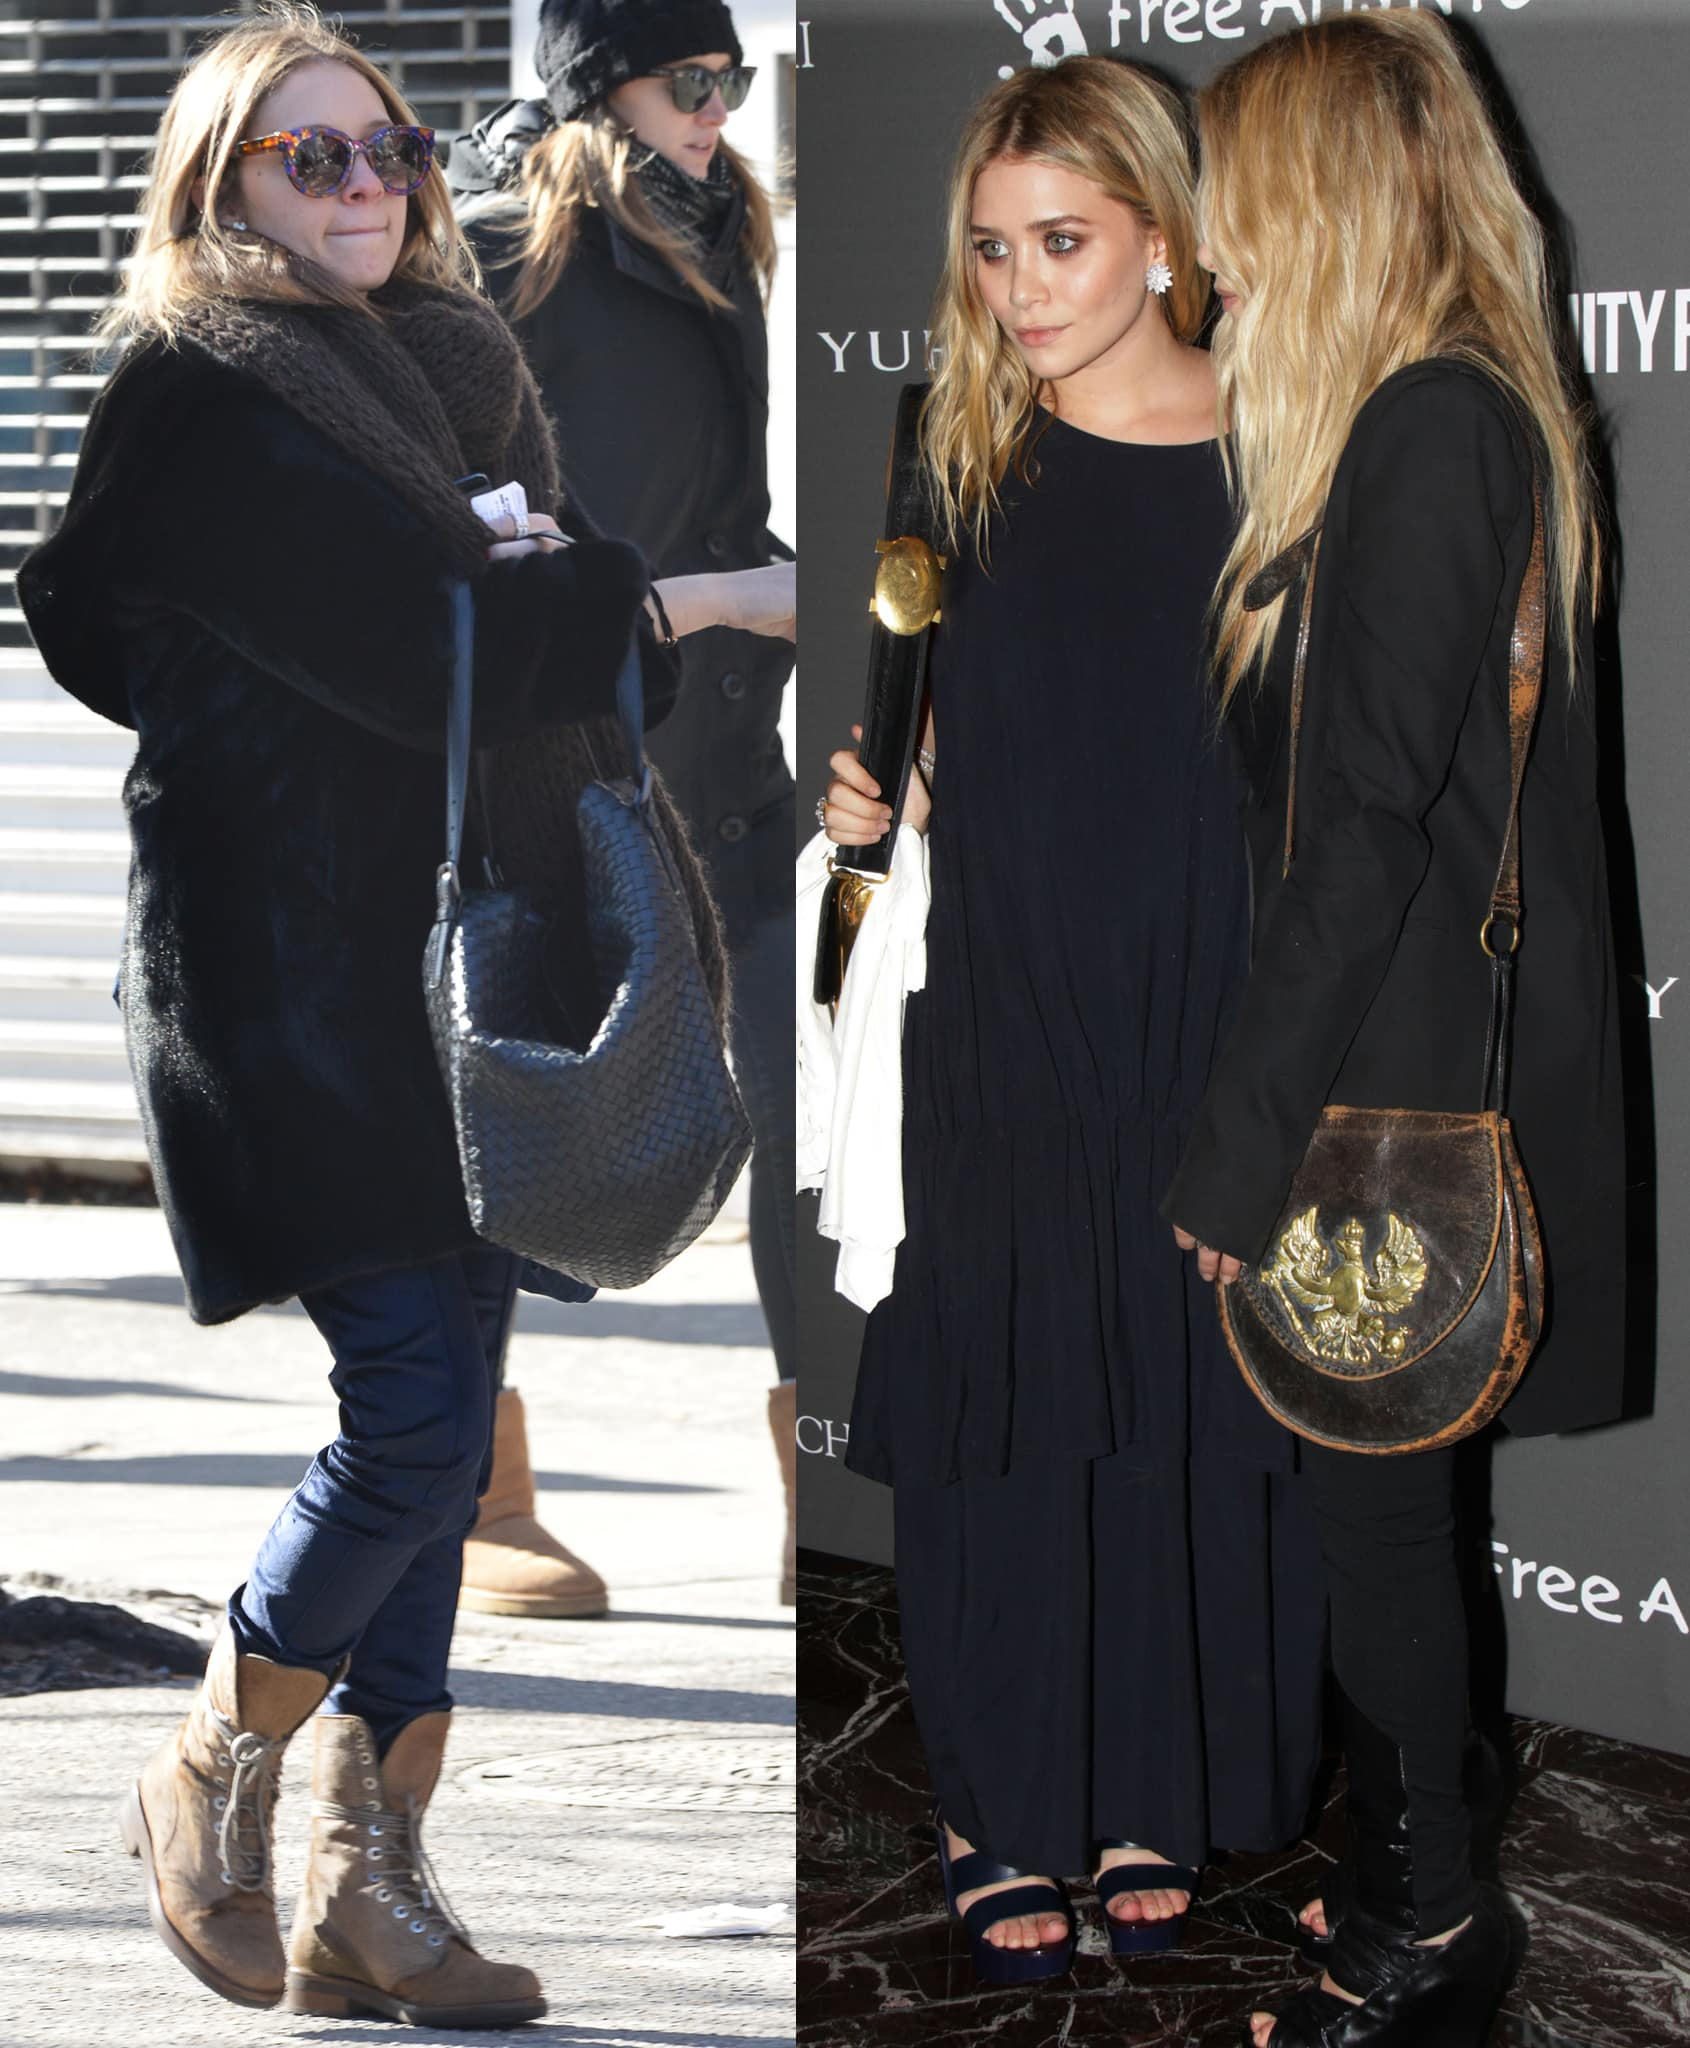 Mary-Kate and Ashley Olsen are among those who popularized hobo bags as part of the Boho-chic trend